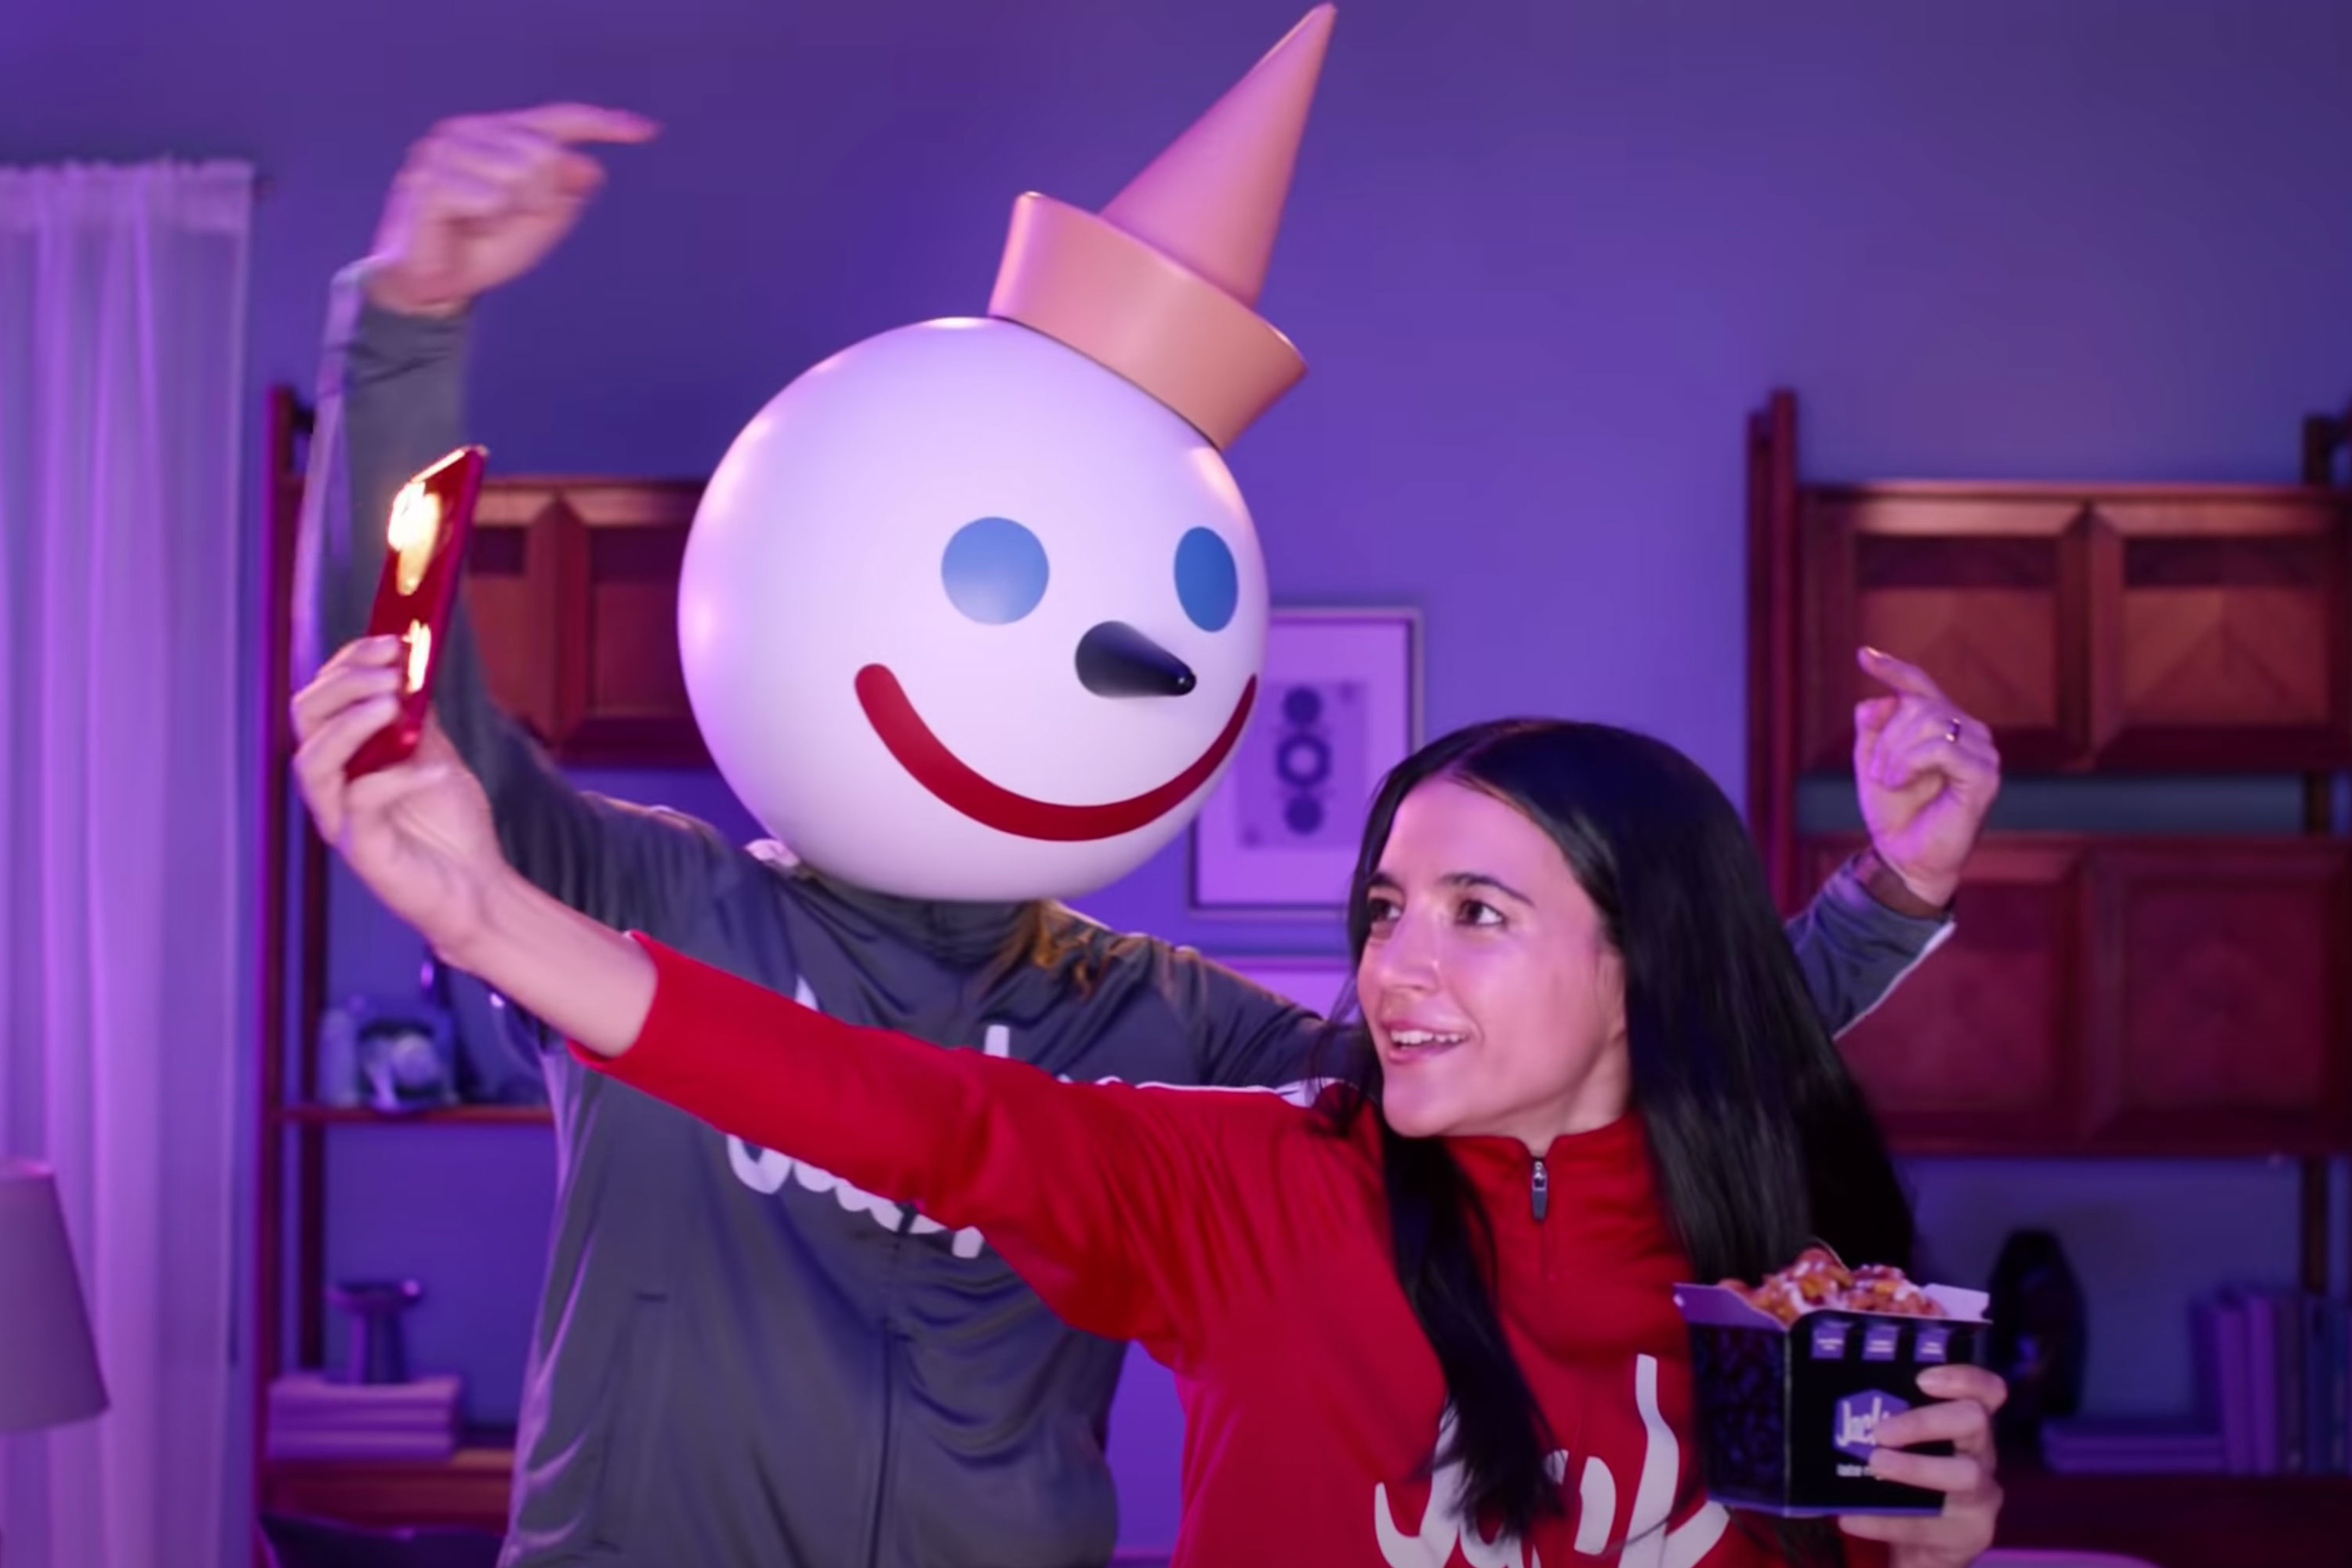 Watch the newest commercials on TV from T-Mobile, Jack in the Box, Peloton and more